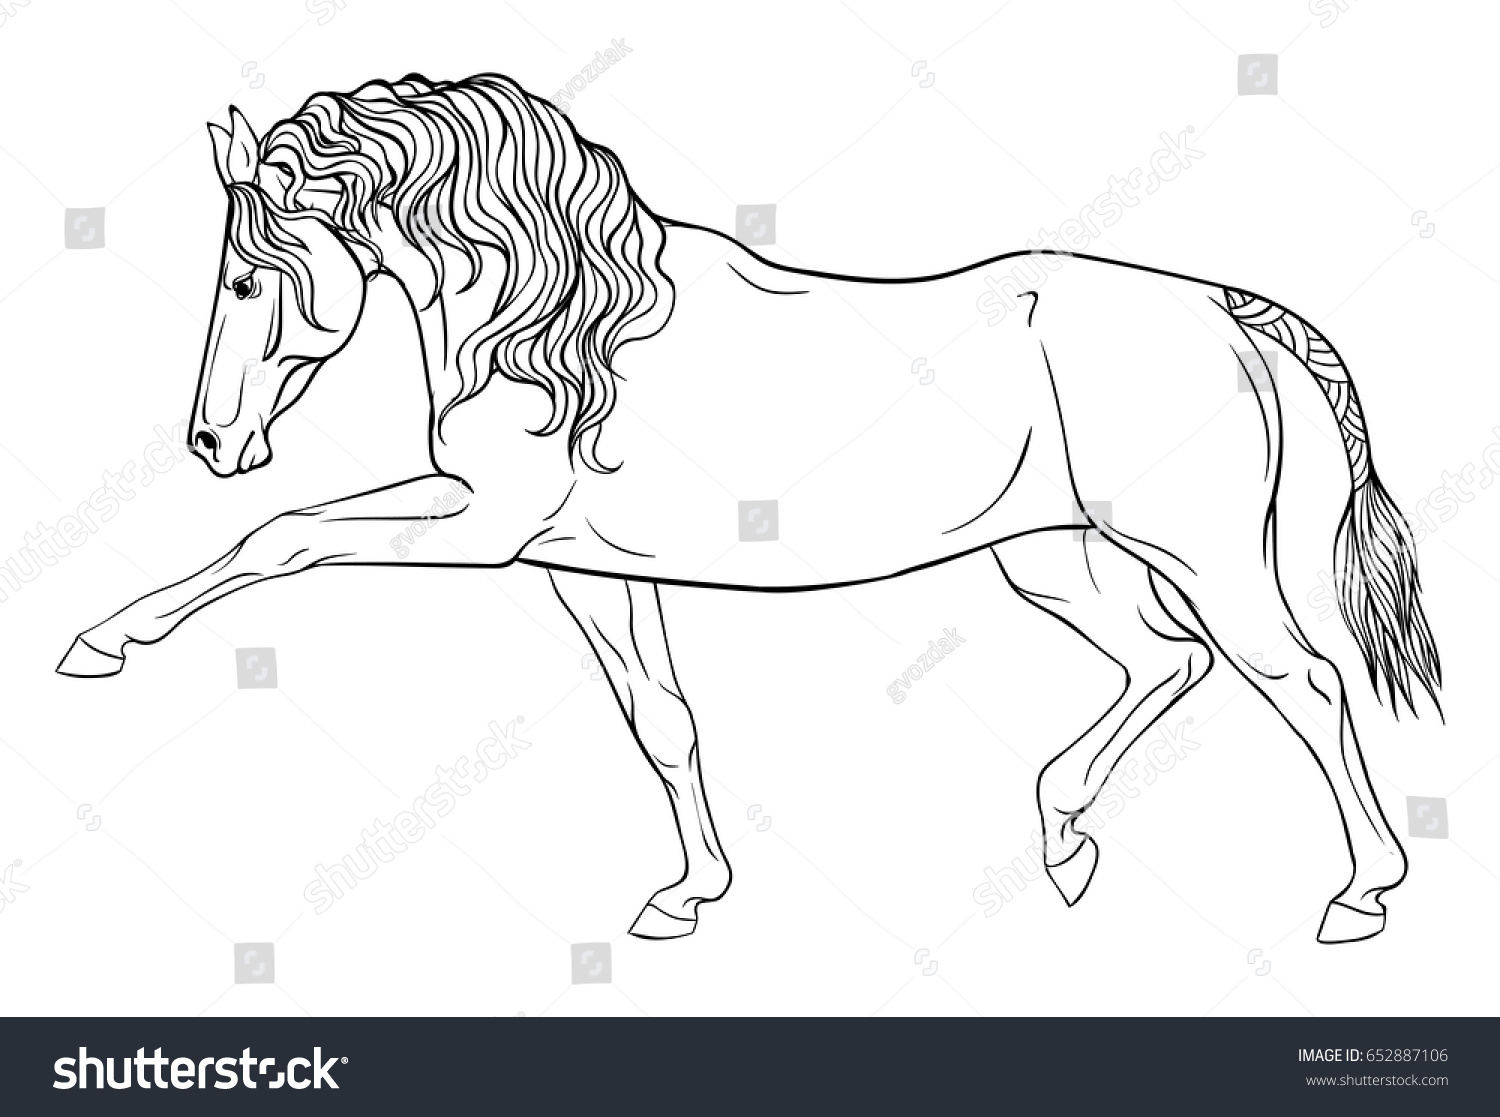 Page Coloring Equestrian Sport Horse Dressage Stock Vector Royalty Free 652887106